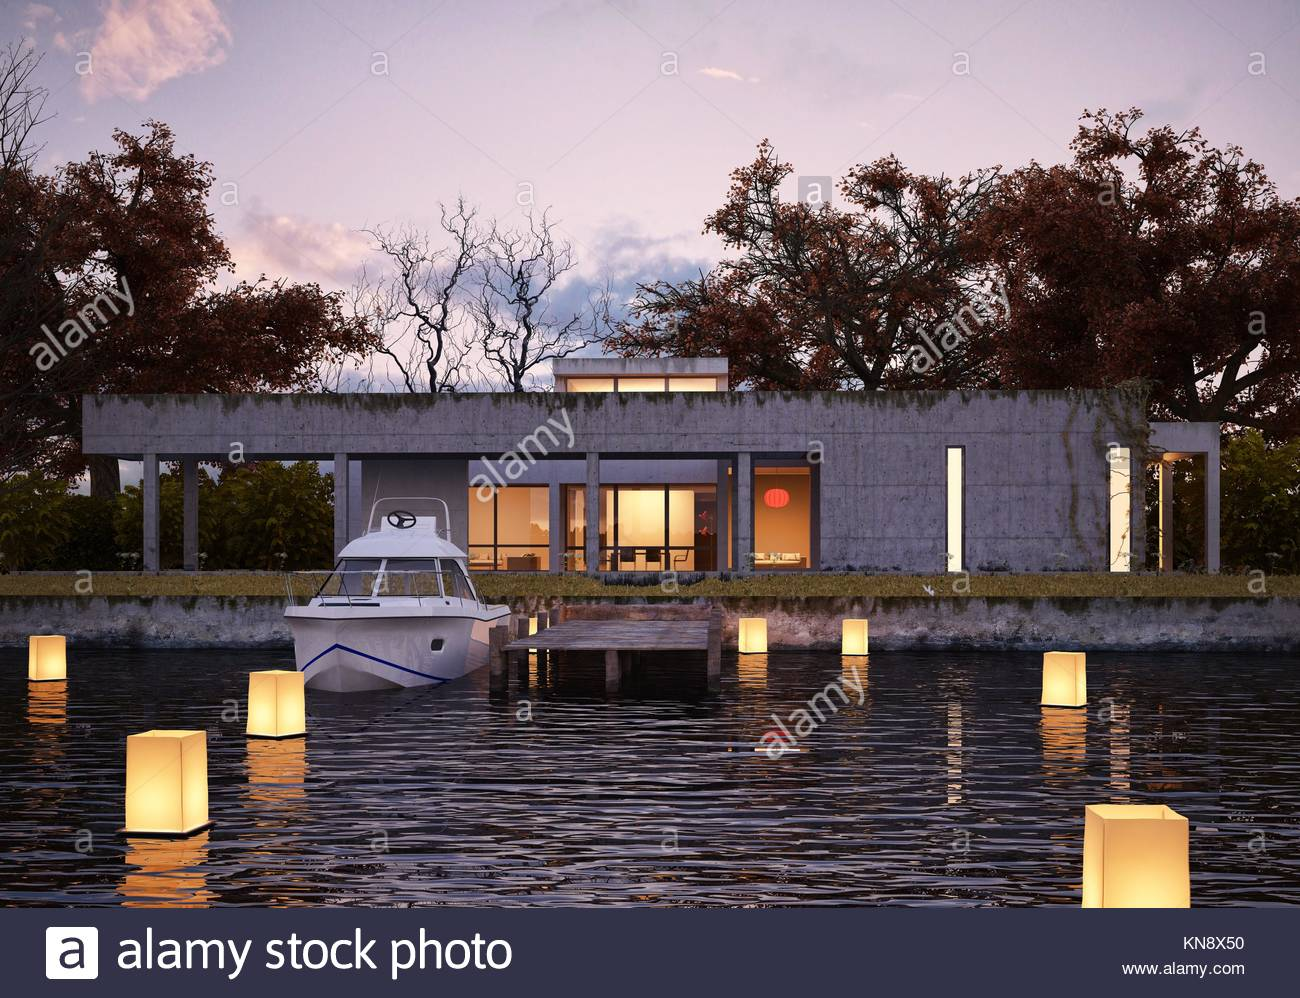 Luxury modern house on water at sunset, with private peer and yacht. Glowing lights floating on water give spacial - Stock Image